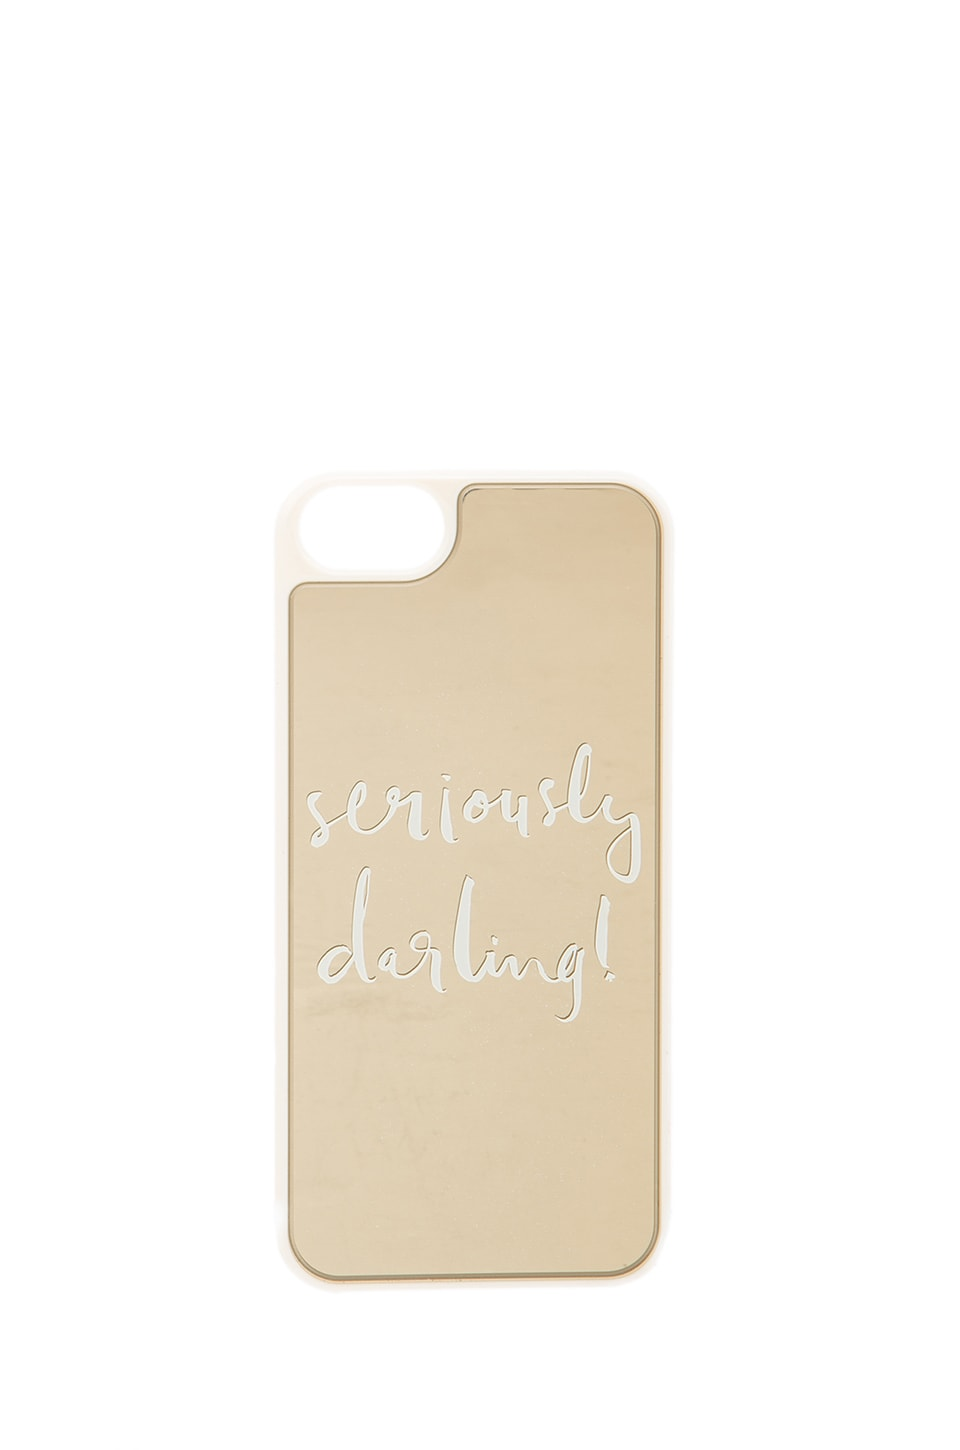 kate spade new york Seriously Darling iPhone 5 Case in Gold Mirror